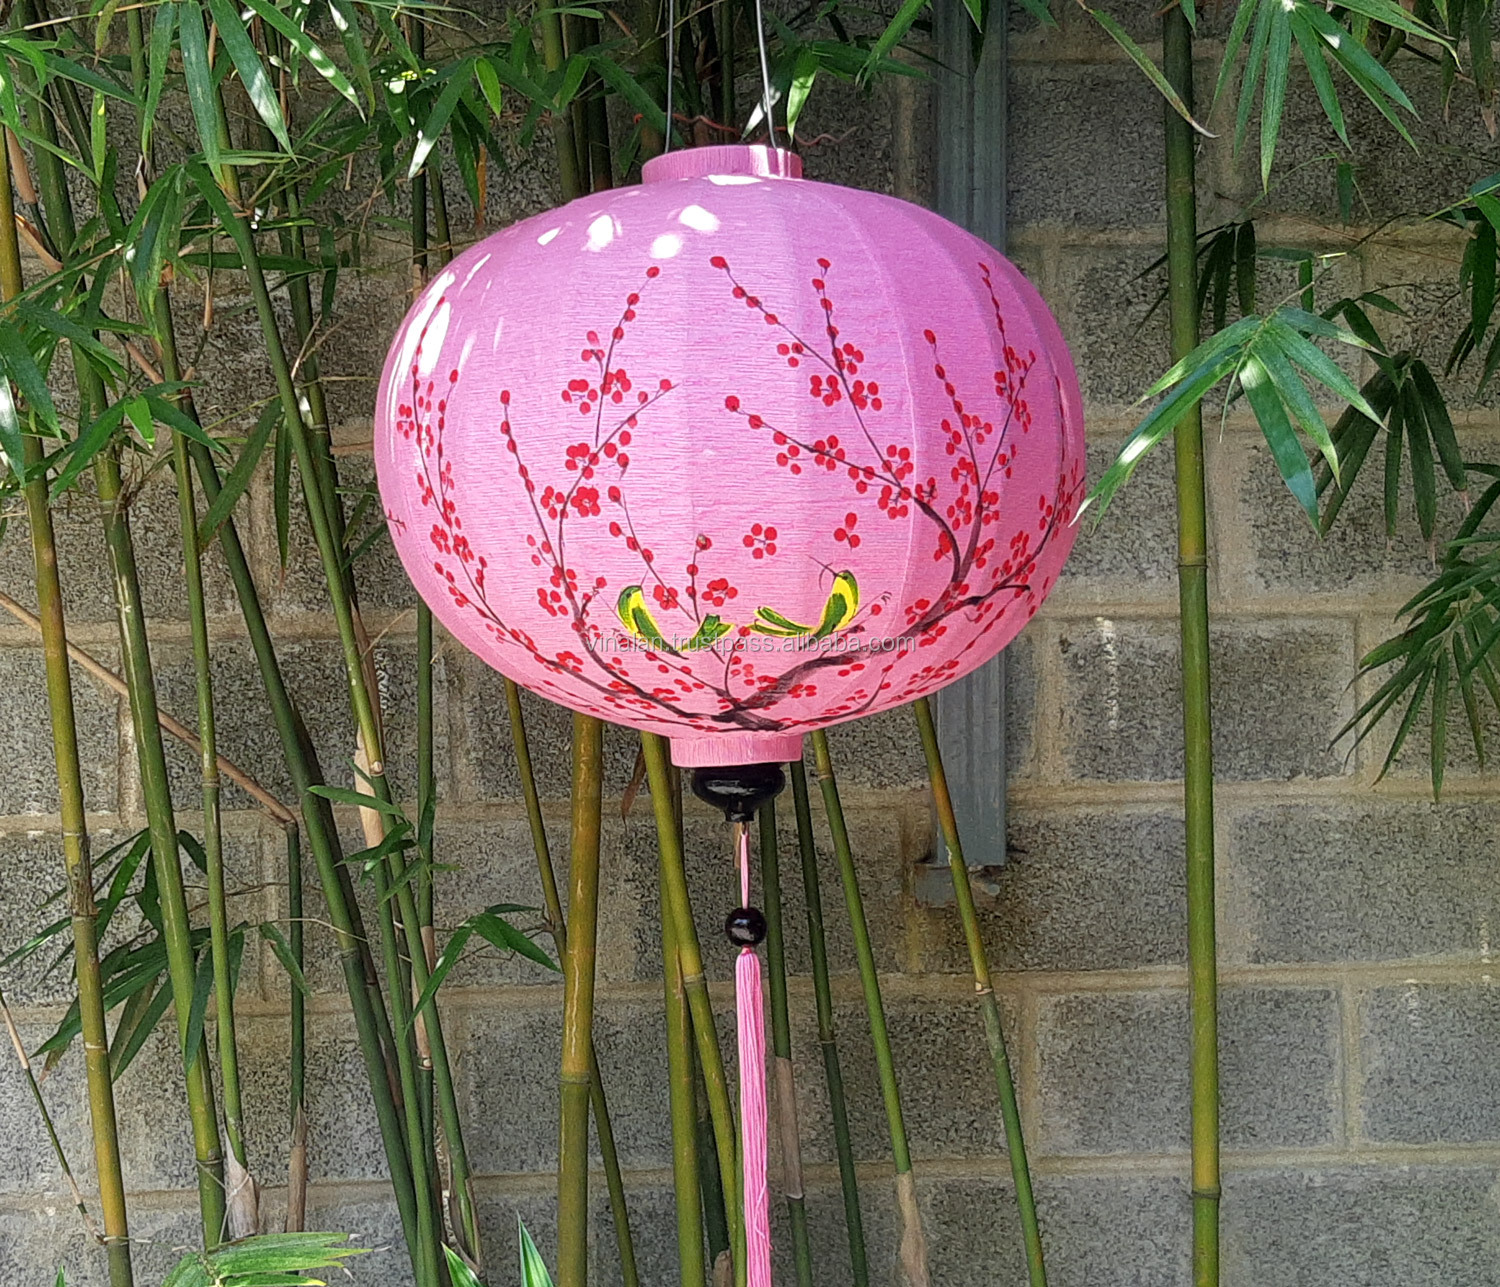 Hoi An silk lanterns with Cherry Blossom and Birds handpainted - 60cm